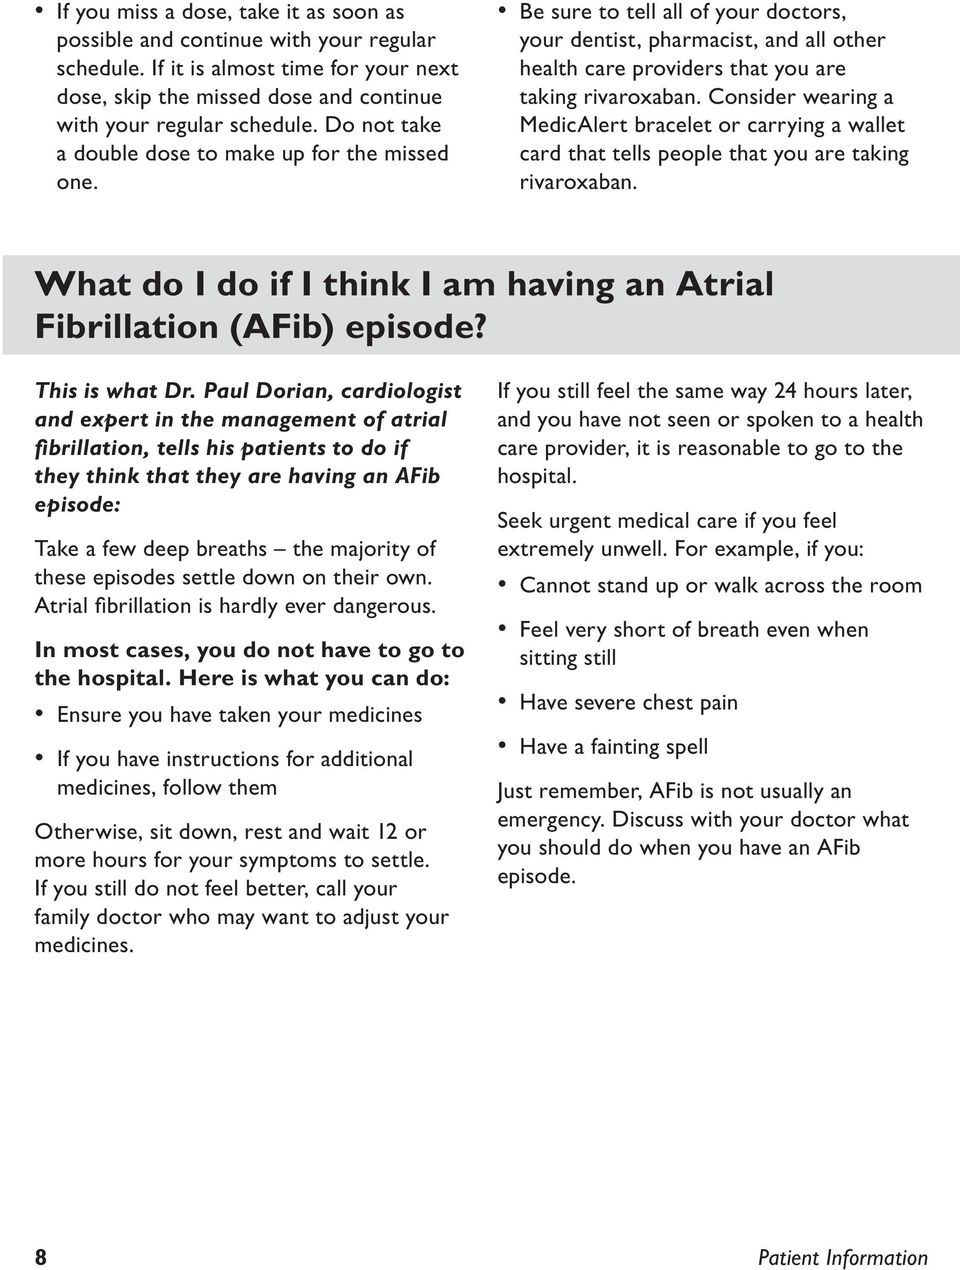 Consider wearing a MedicAlert bracelet or carrying a wallet card that tells people that you are taking rivaroxaban. What do I do if I think I am having an Atrial Fibrillation (AFib) episode?